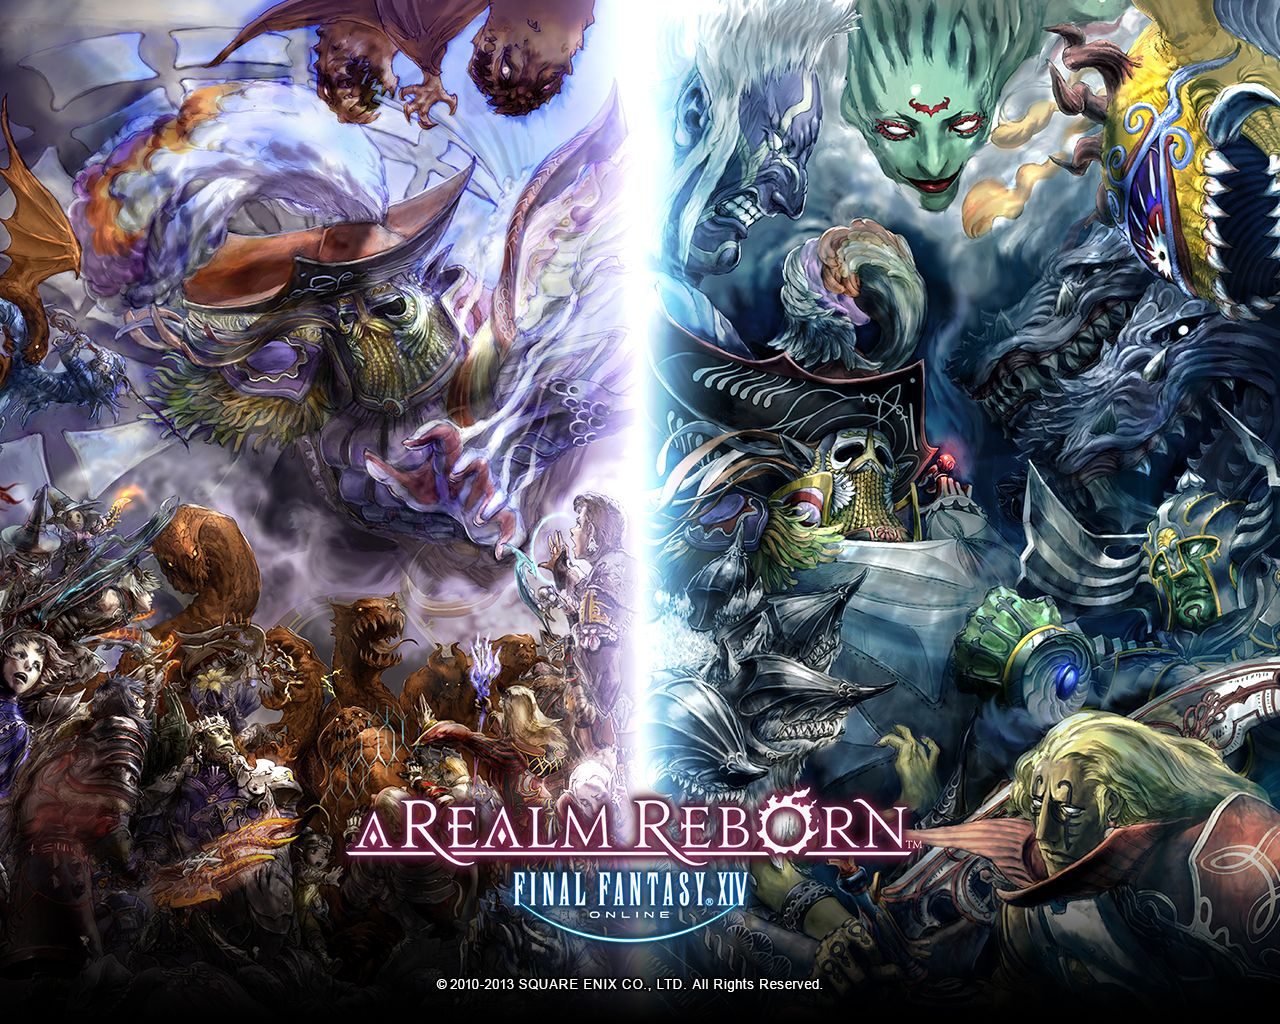 Final Fantasy 14 A Realm Reborn Wallpapers Group  71   Final Fantasy XIV  A Realm Reborn Store     Fan Gear  Guides  Gift